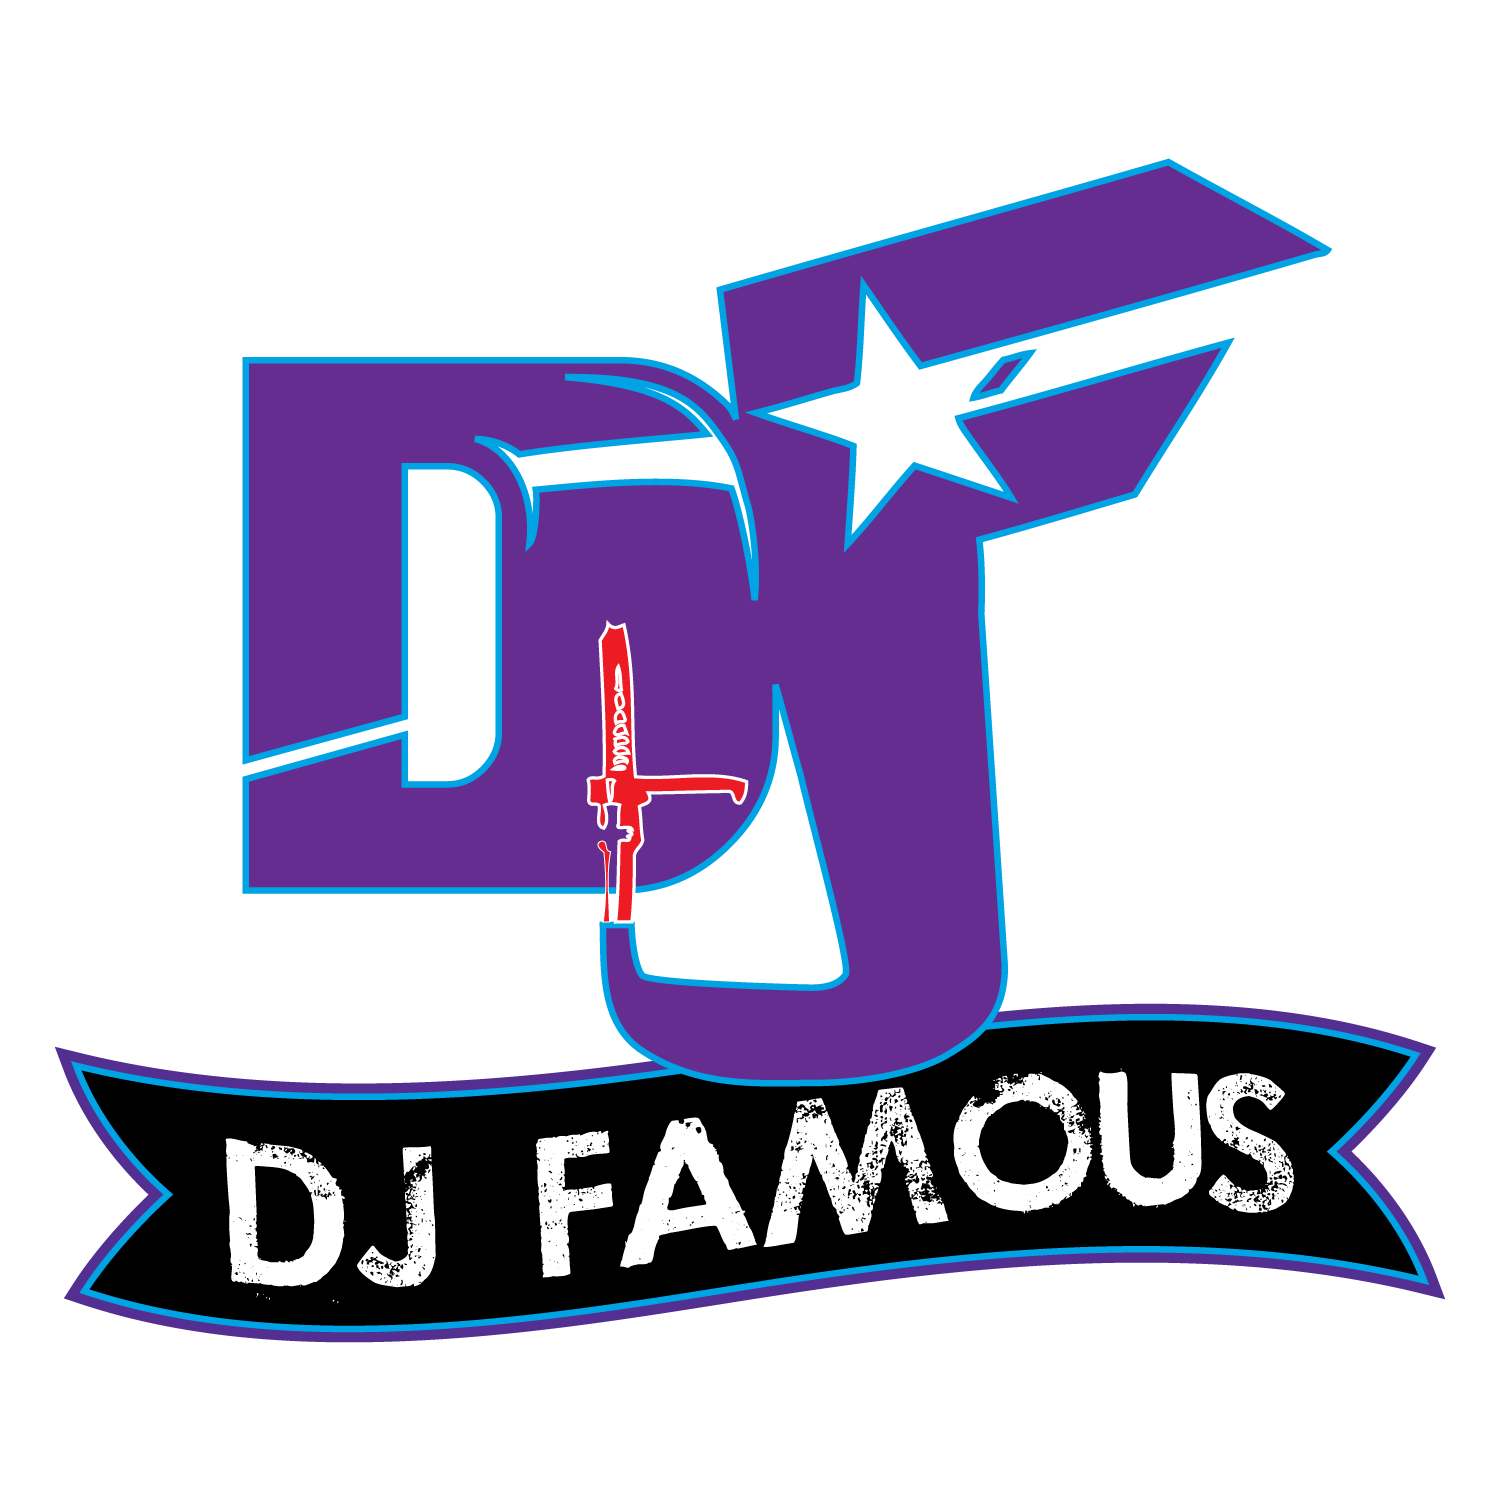 New Logo Design For Dj Famous By Flesh Designz All Media